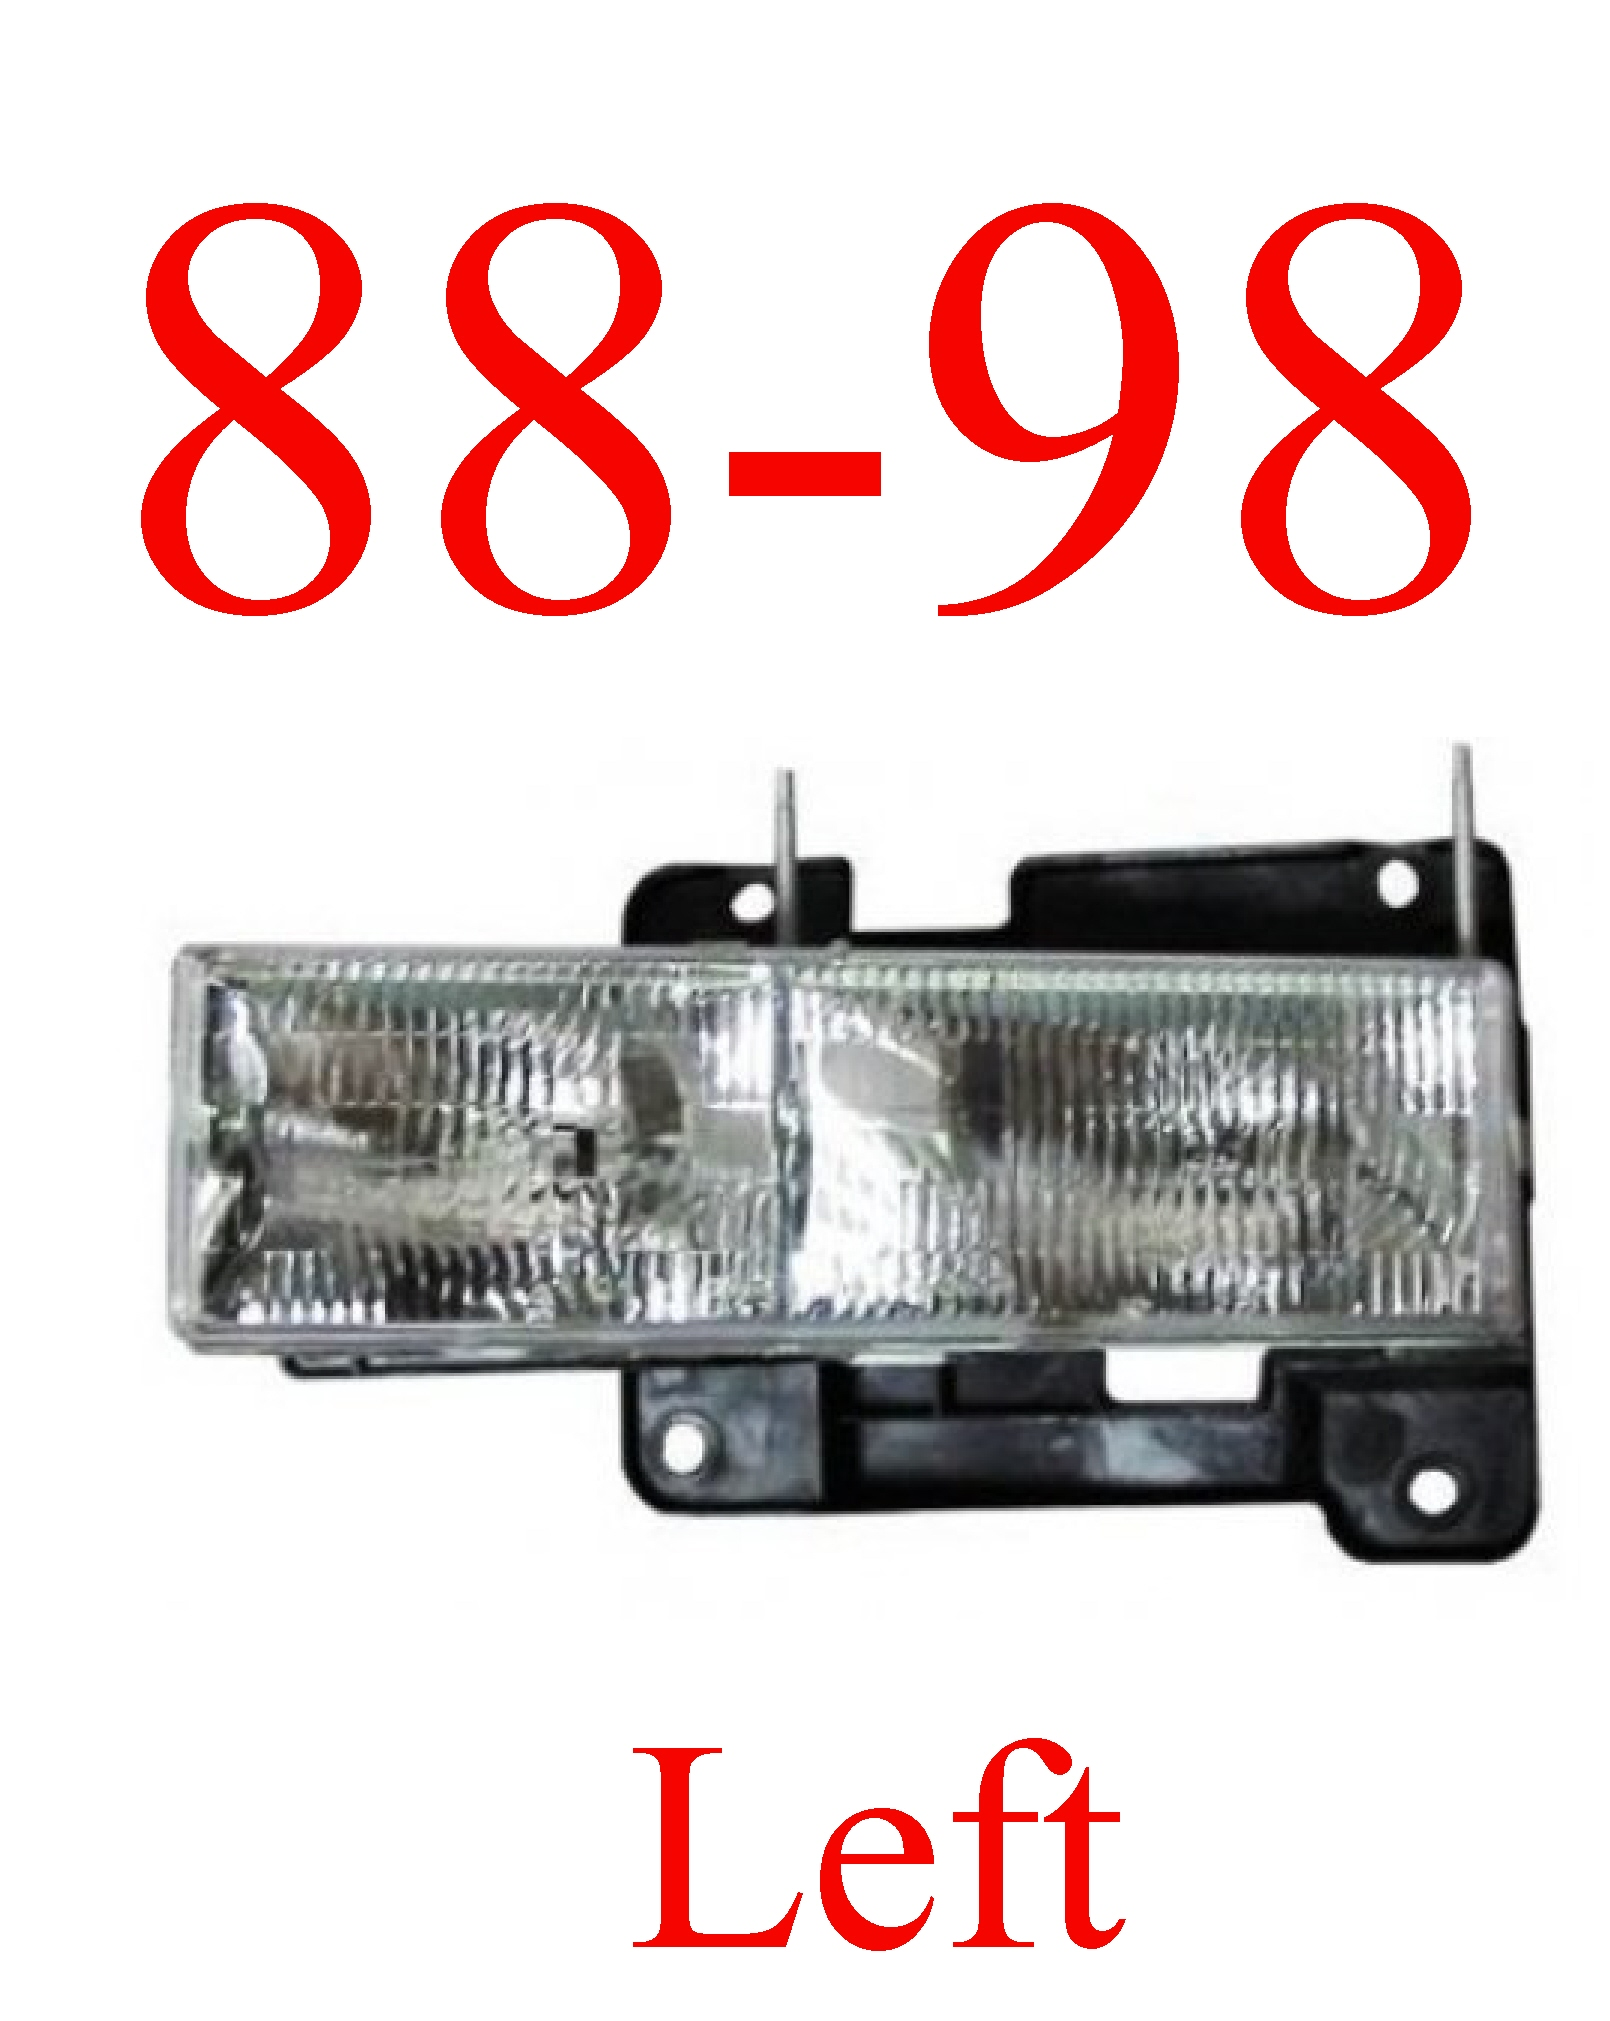 88-98 Chevy Left Head Light Assembly Composite